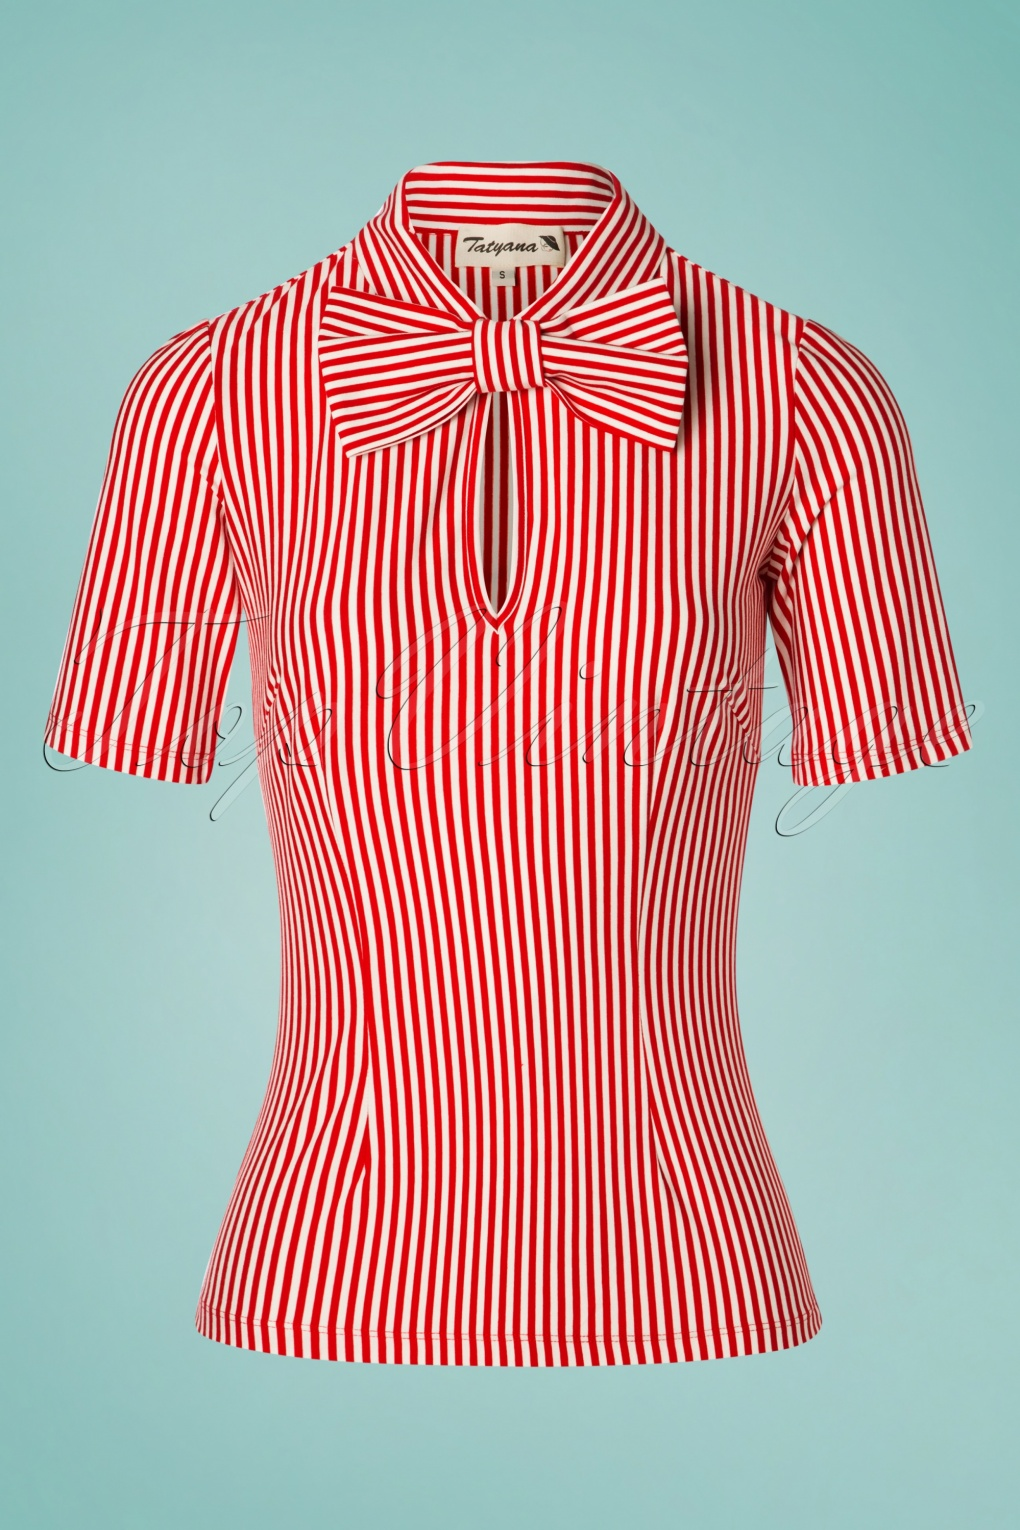 Sailor Dresses, Nautical Theme Dress, WW2 Dresses 50s All Aboard Blouse in Red and White �57.40 AT vintagedancer.com